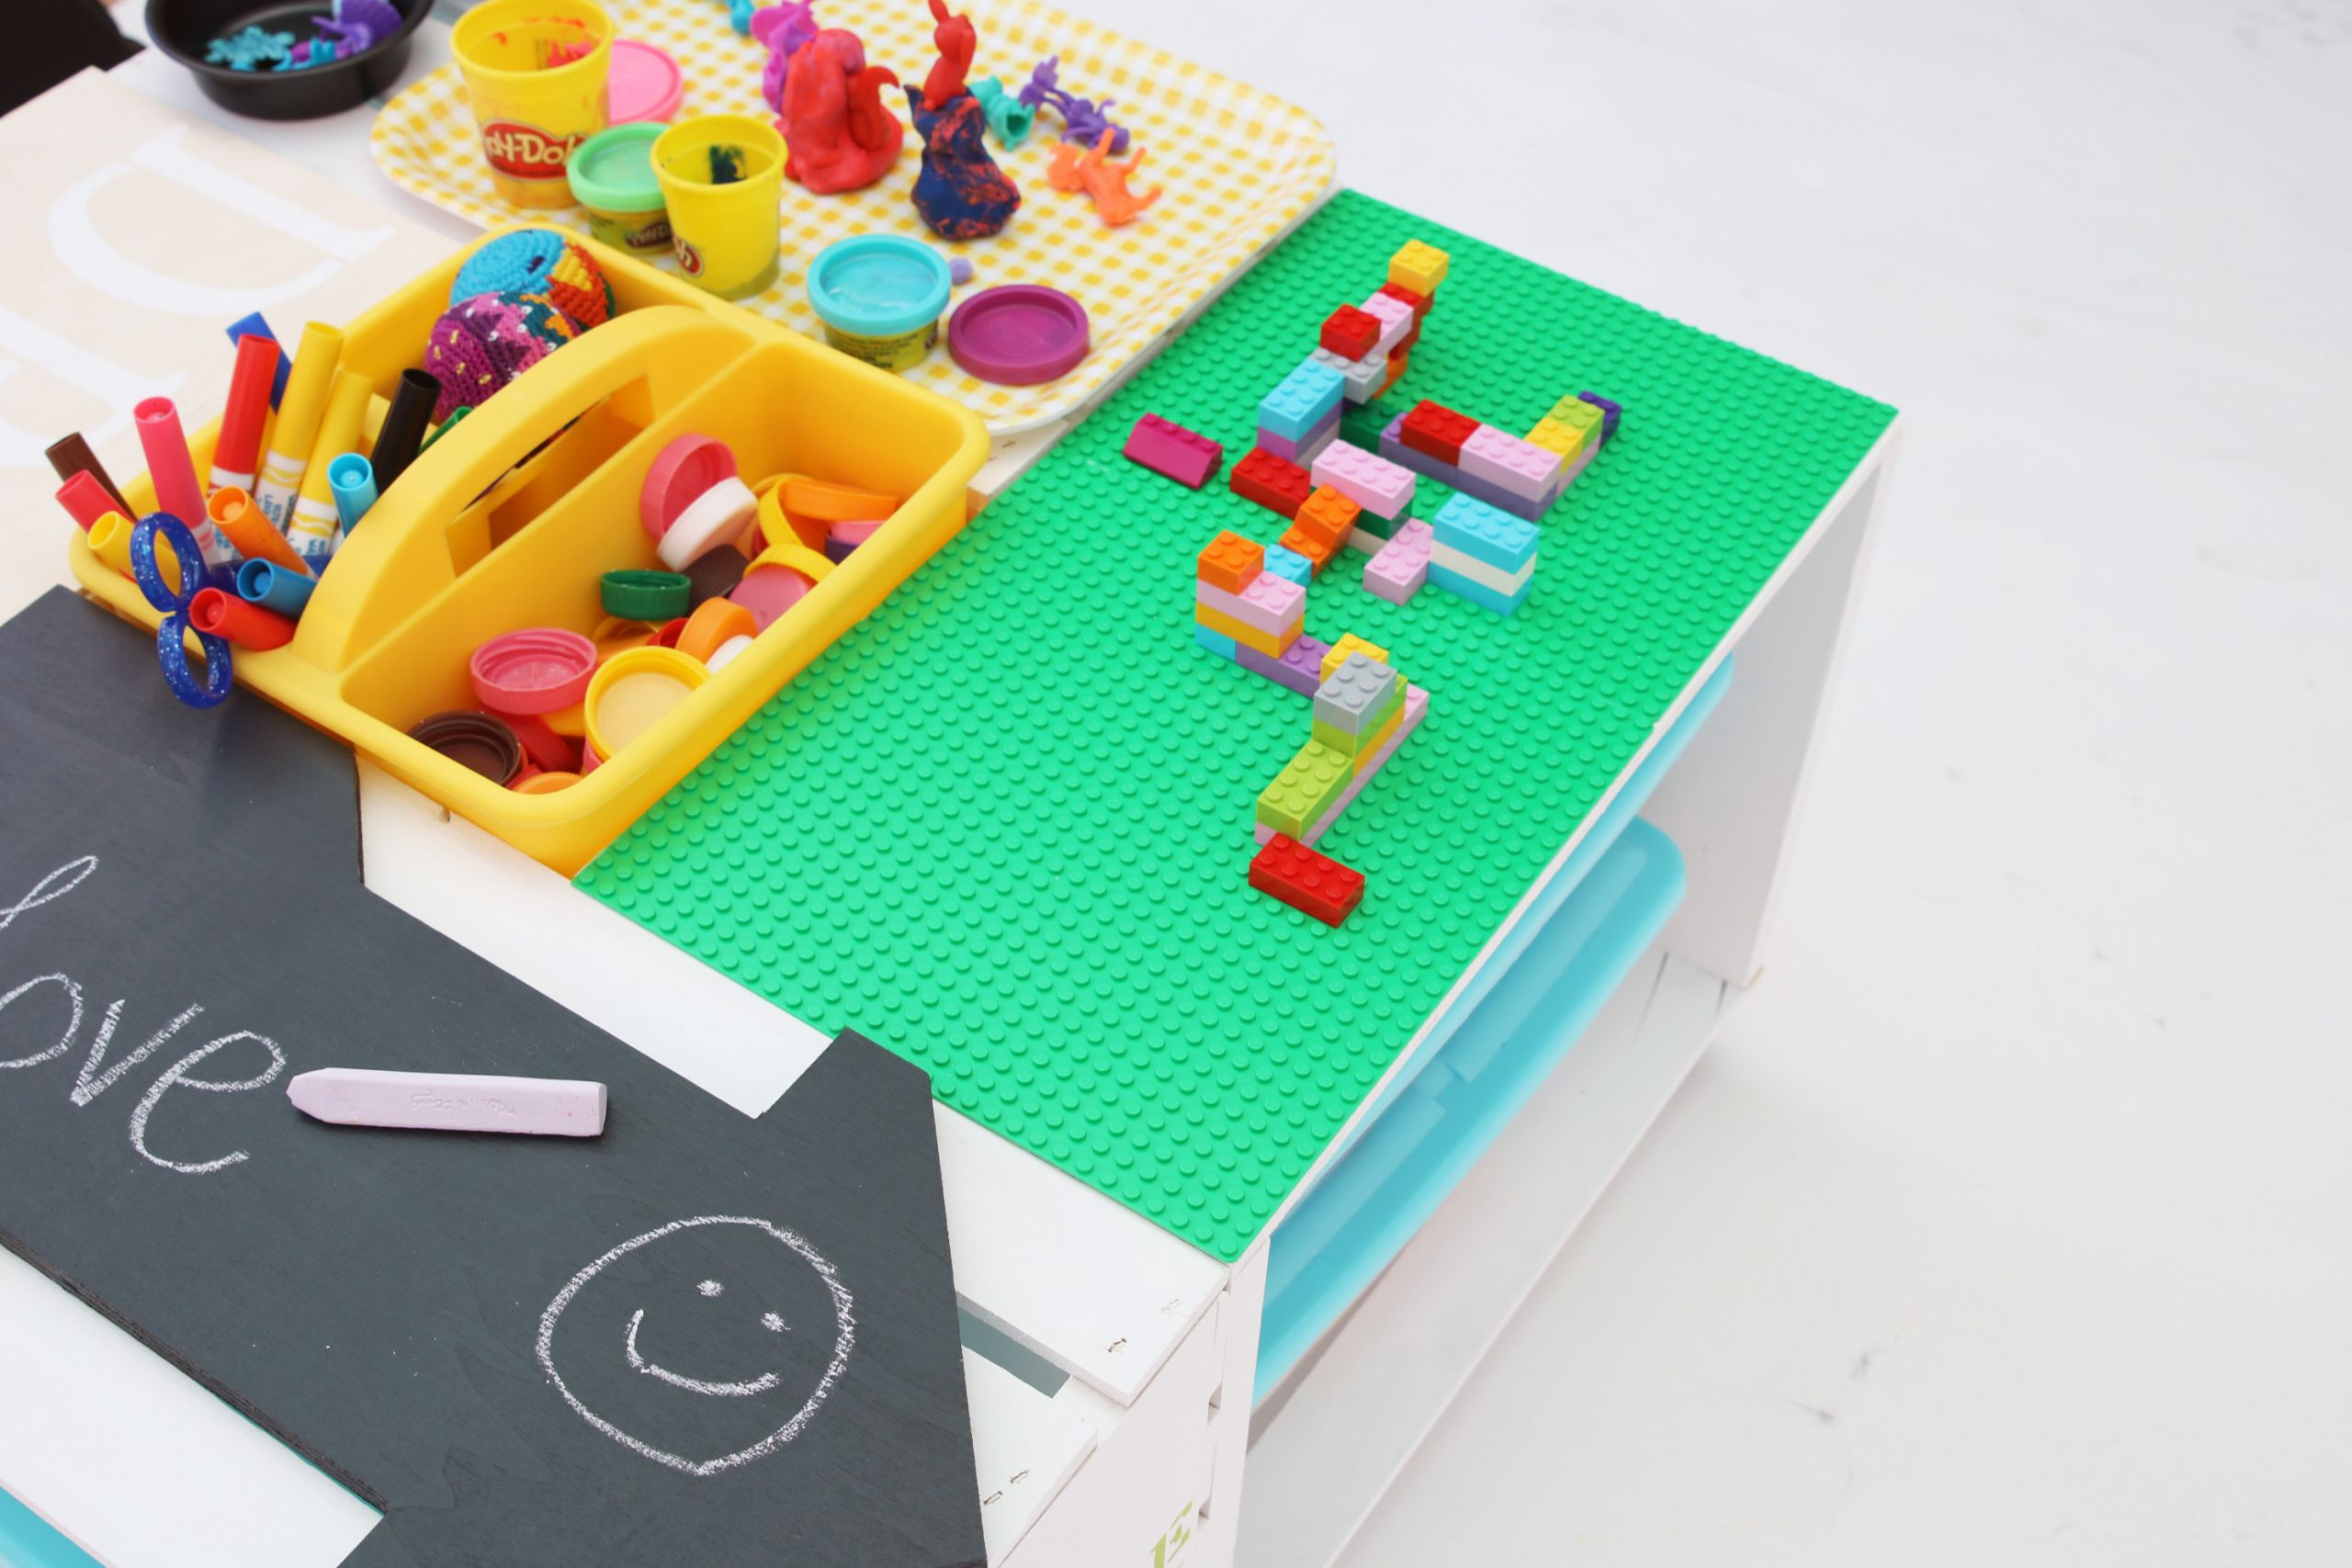 DIY Activity Table For Toddlers  DIY Kids Activity Center Lego Table made with 4 Wood